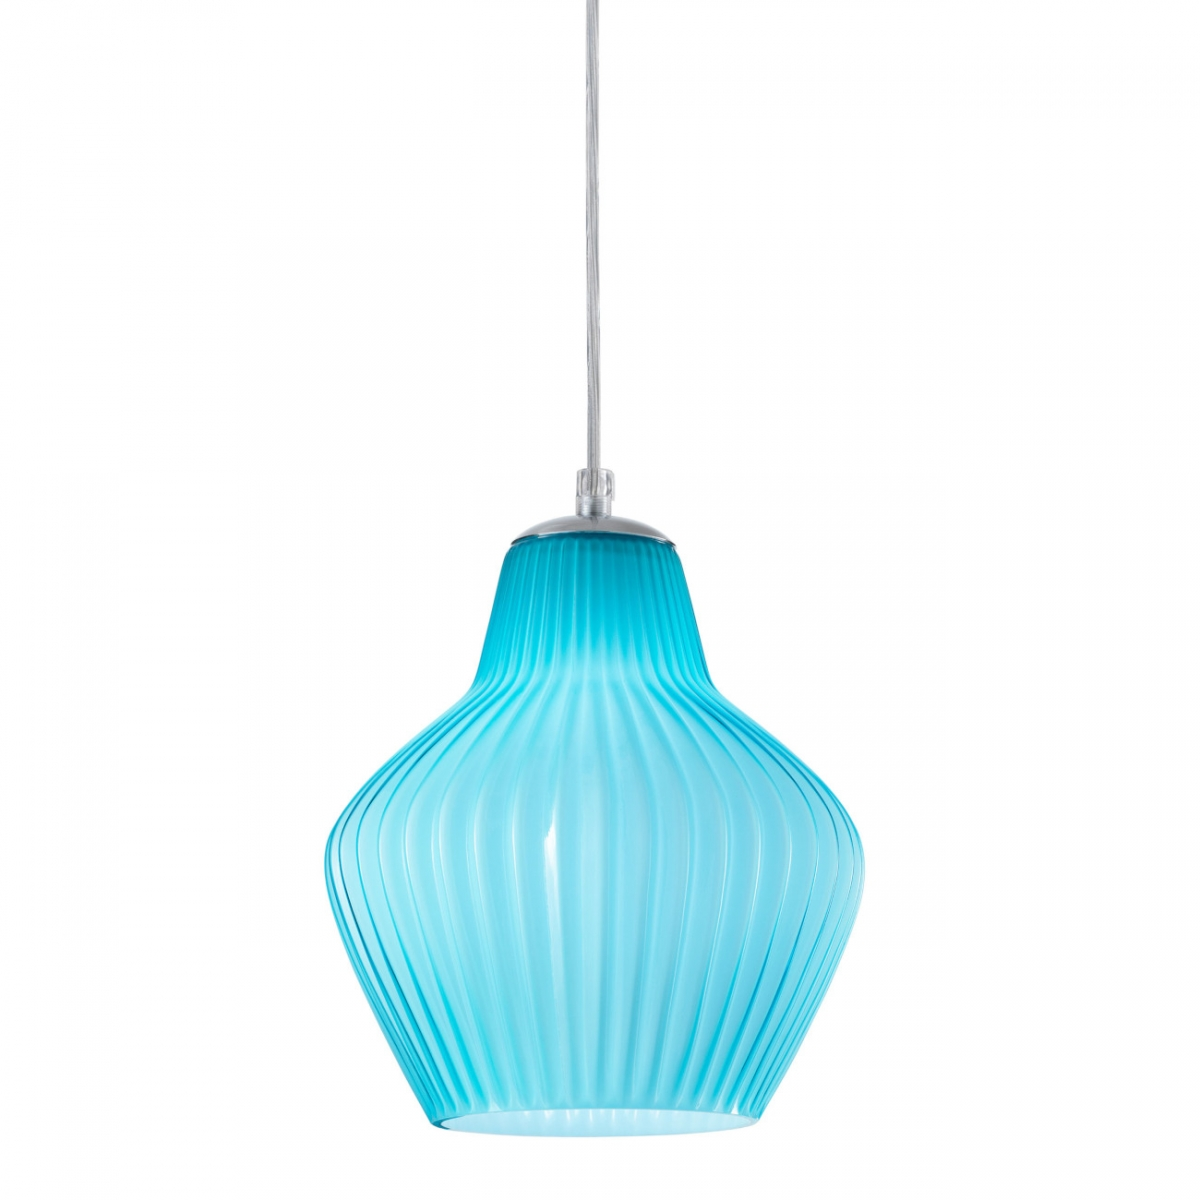 Verre Murano De Contemporaine Suspension En Soufflé fgy7bvmYI6